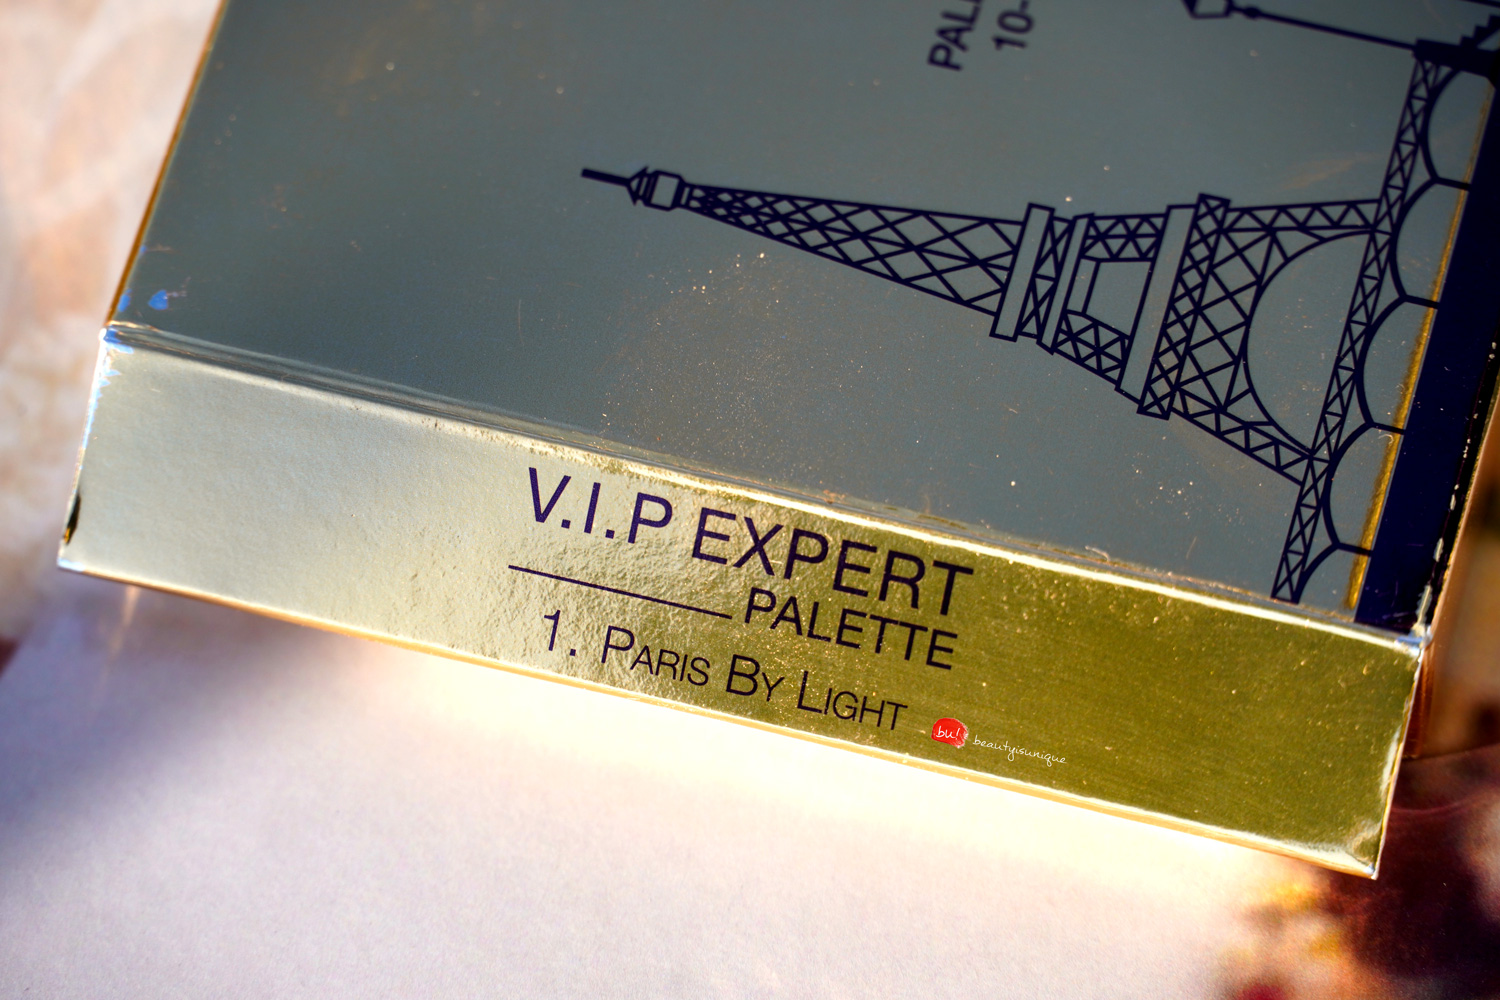 by-terry-vip-expert-palette-paris-by-light